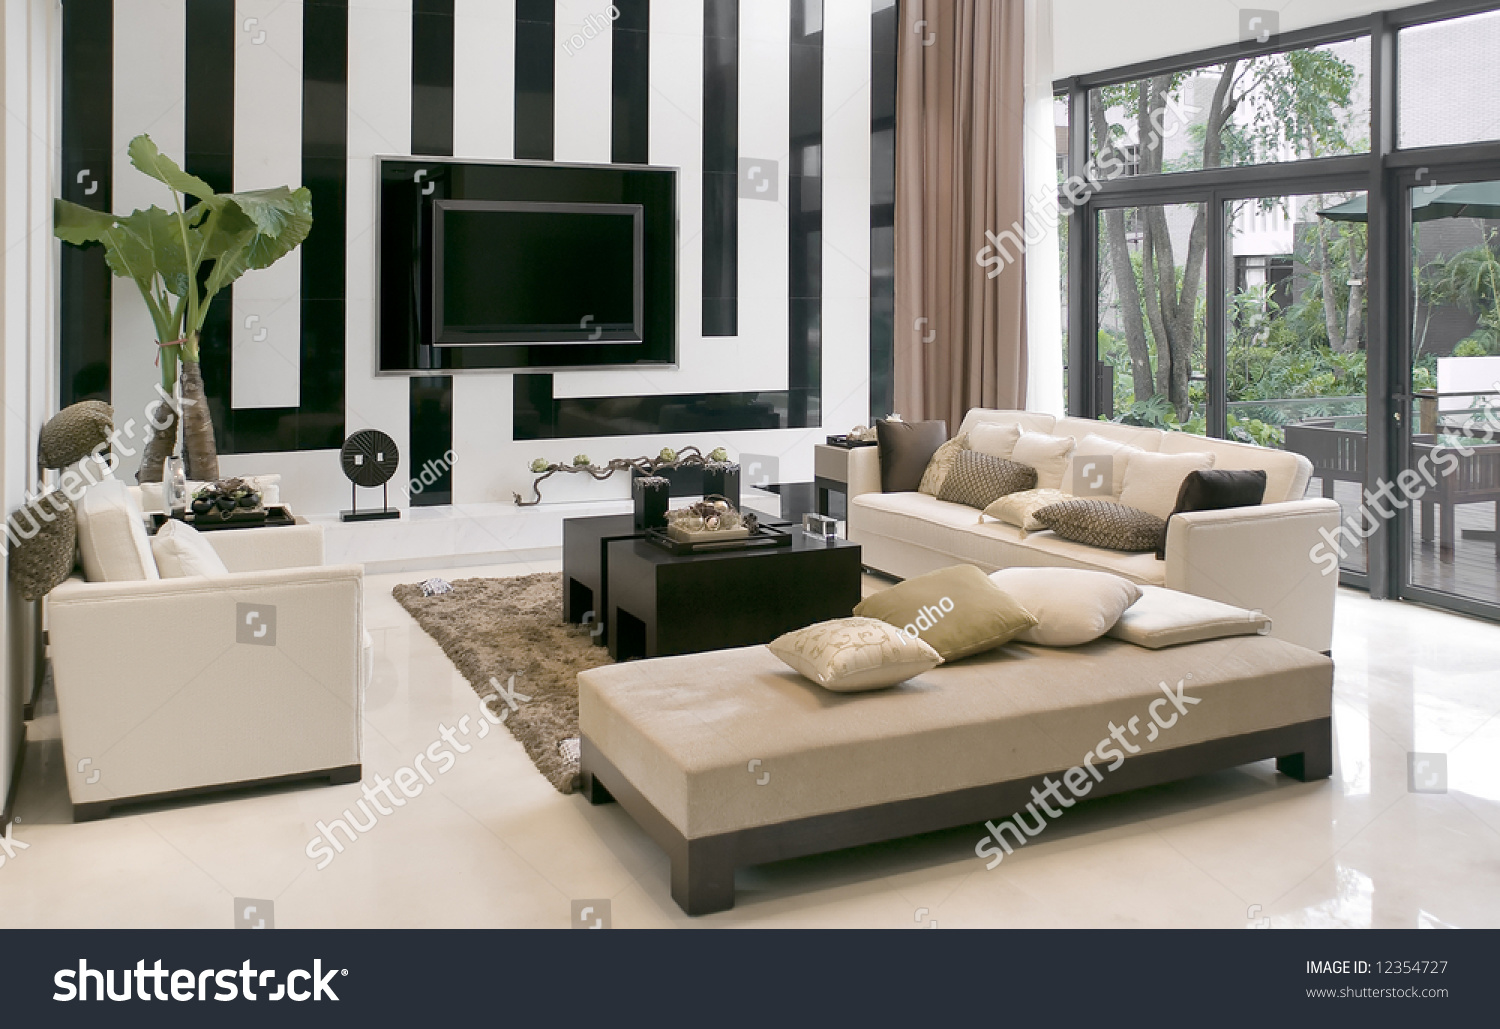 Living Room House Living Room modern houseliving room with the furniture stock photo save to a lightbox